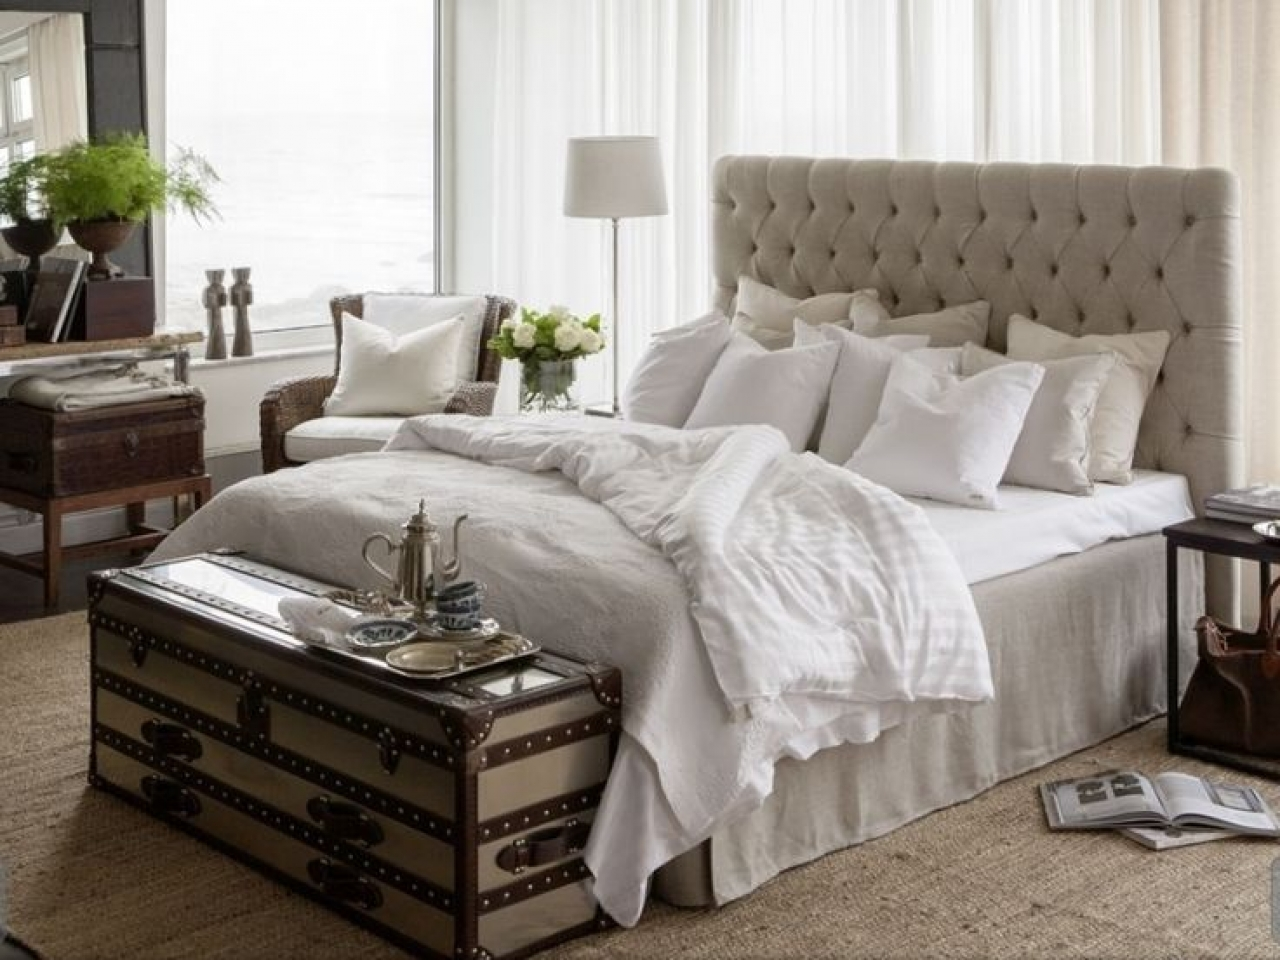 New england bedroom style interior new england style for New england style bed